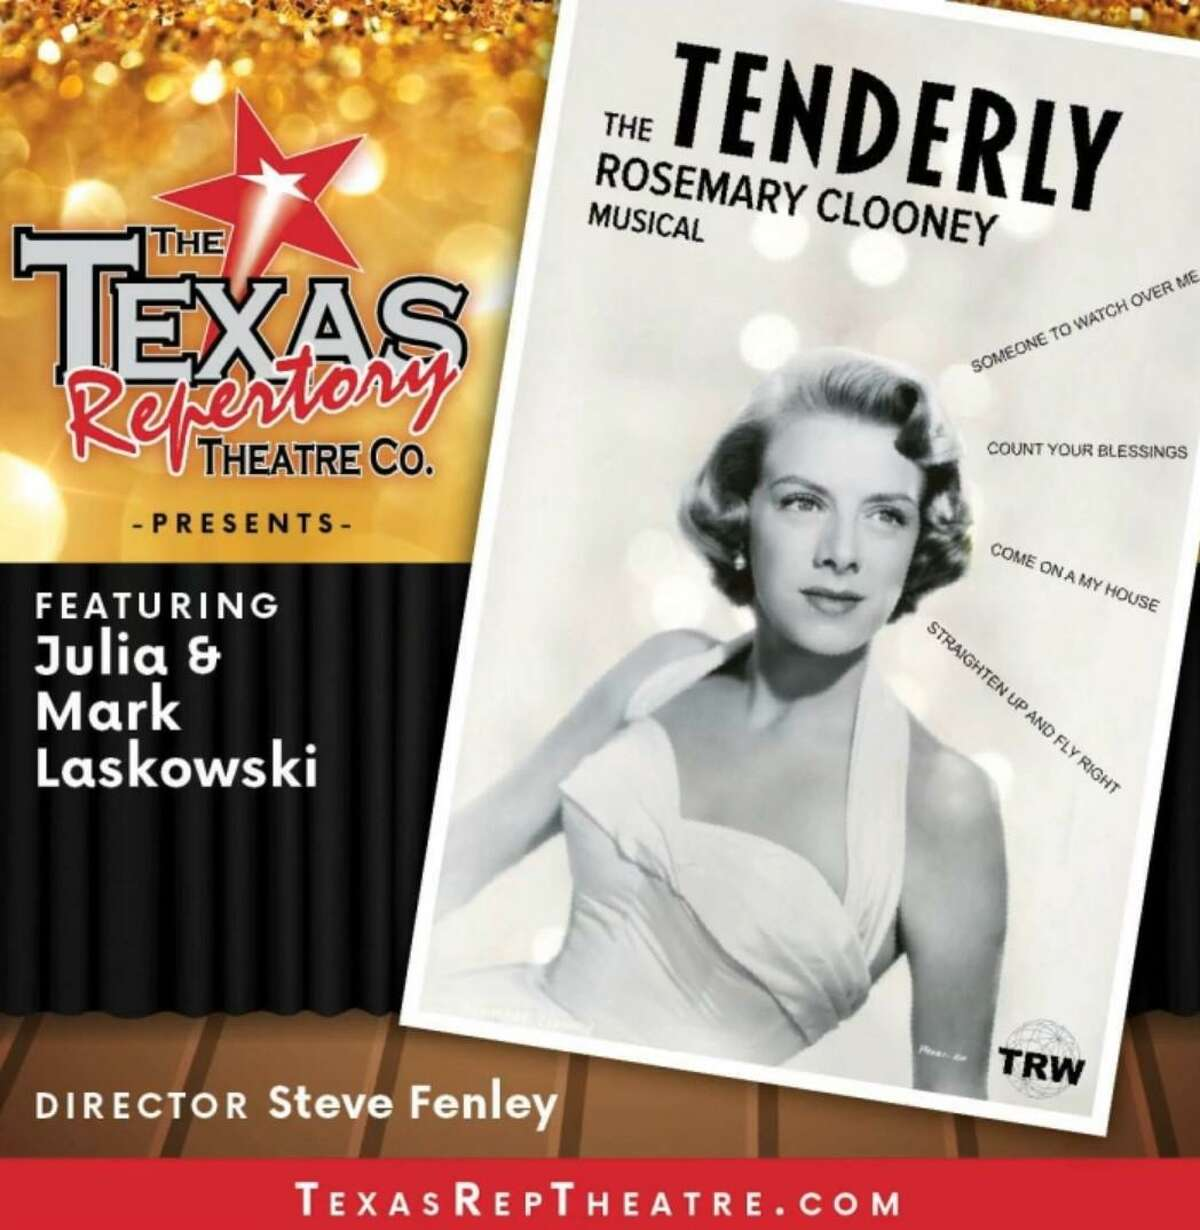 """The Texas Repertory Theatre will soon pay tribute to Rosemary Clooney with a new musical """"TENDERLY."""""""